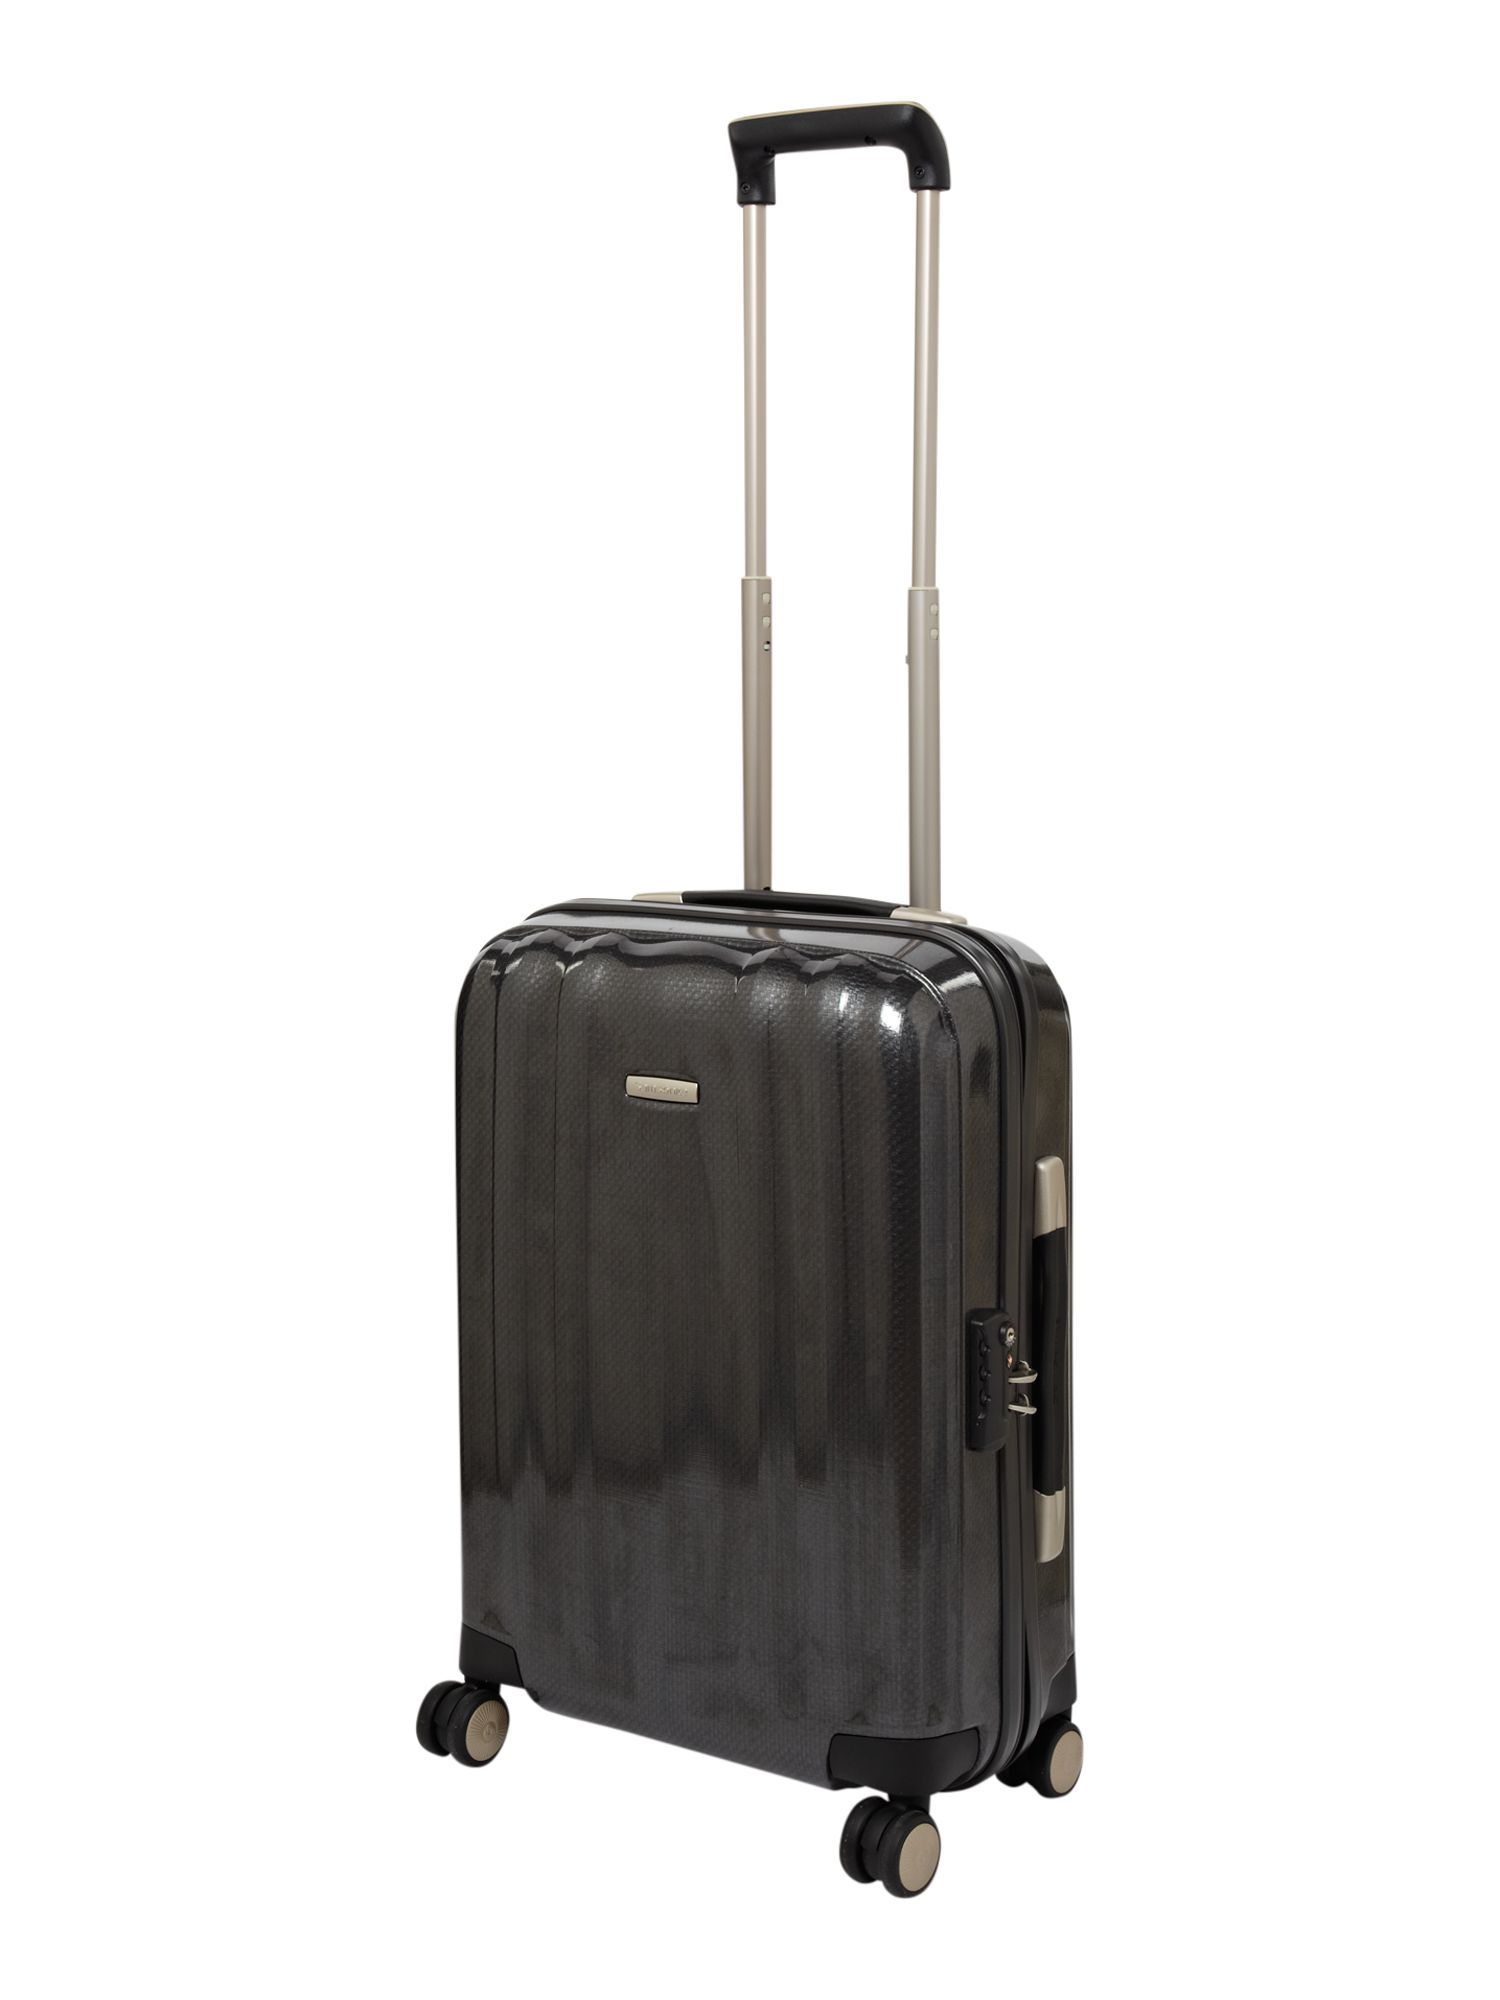 Cubelite Graphite 55cm 4 Wheel Case